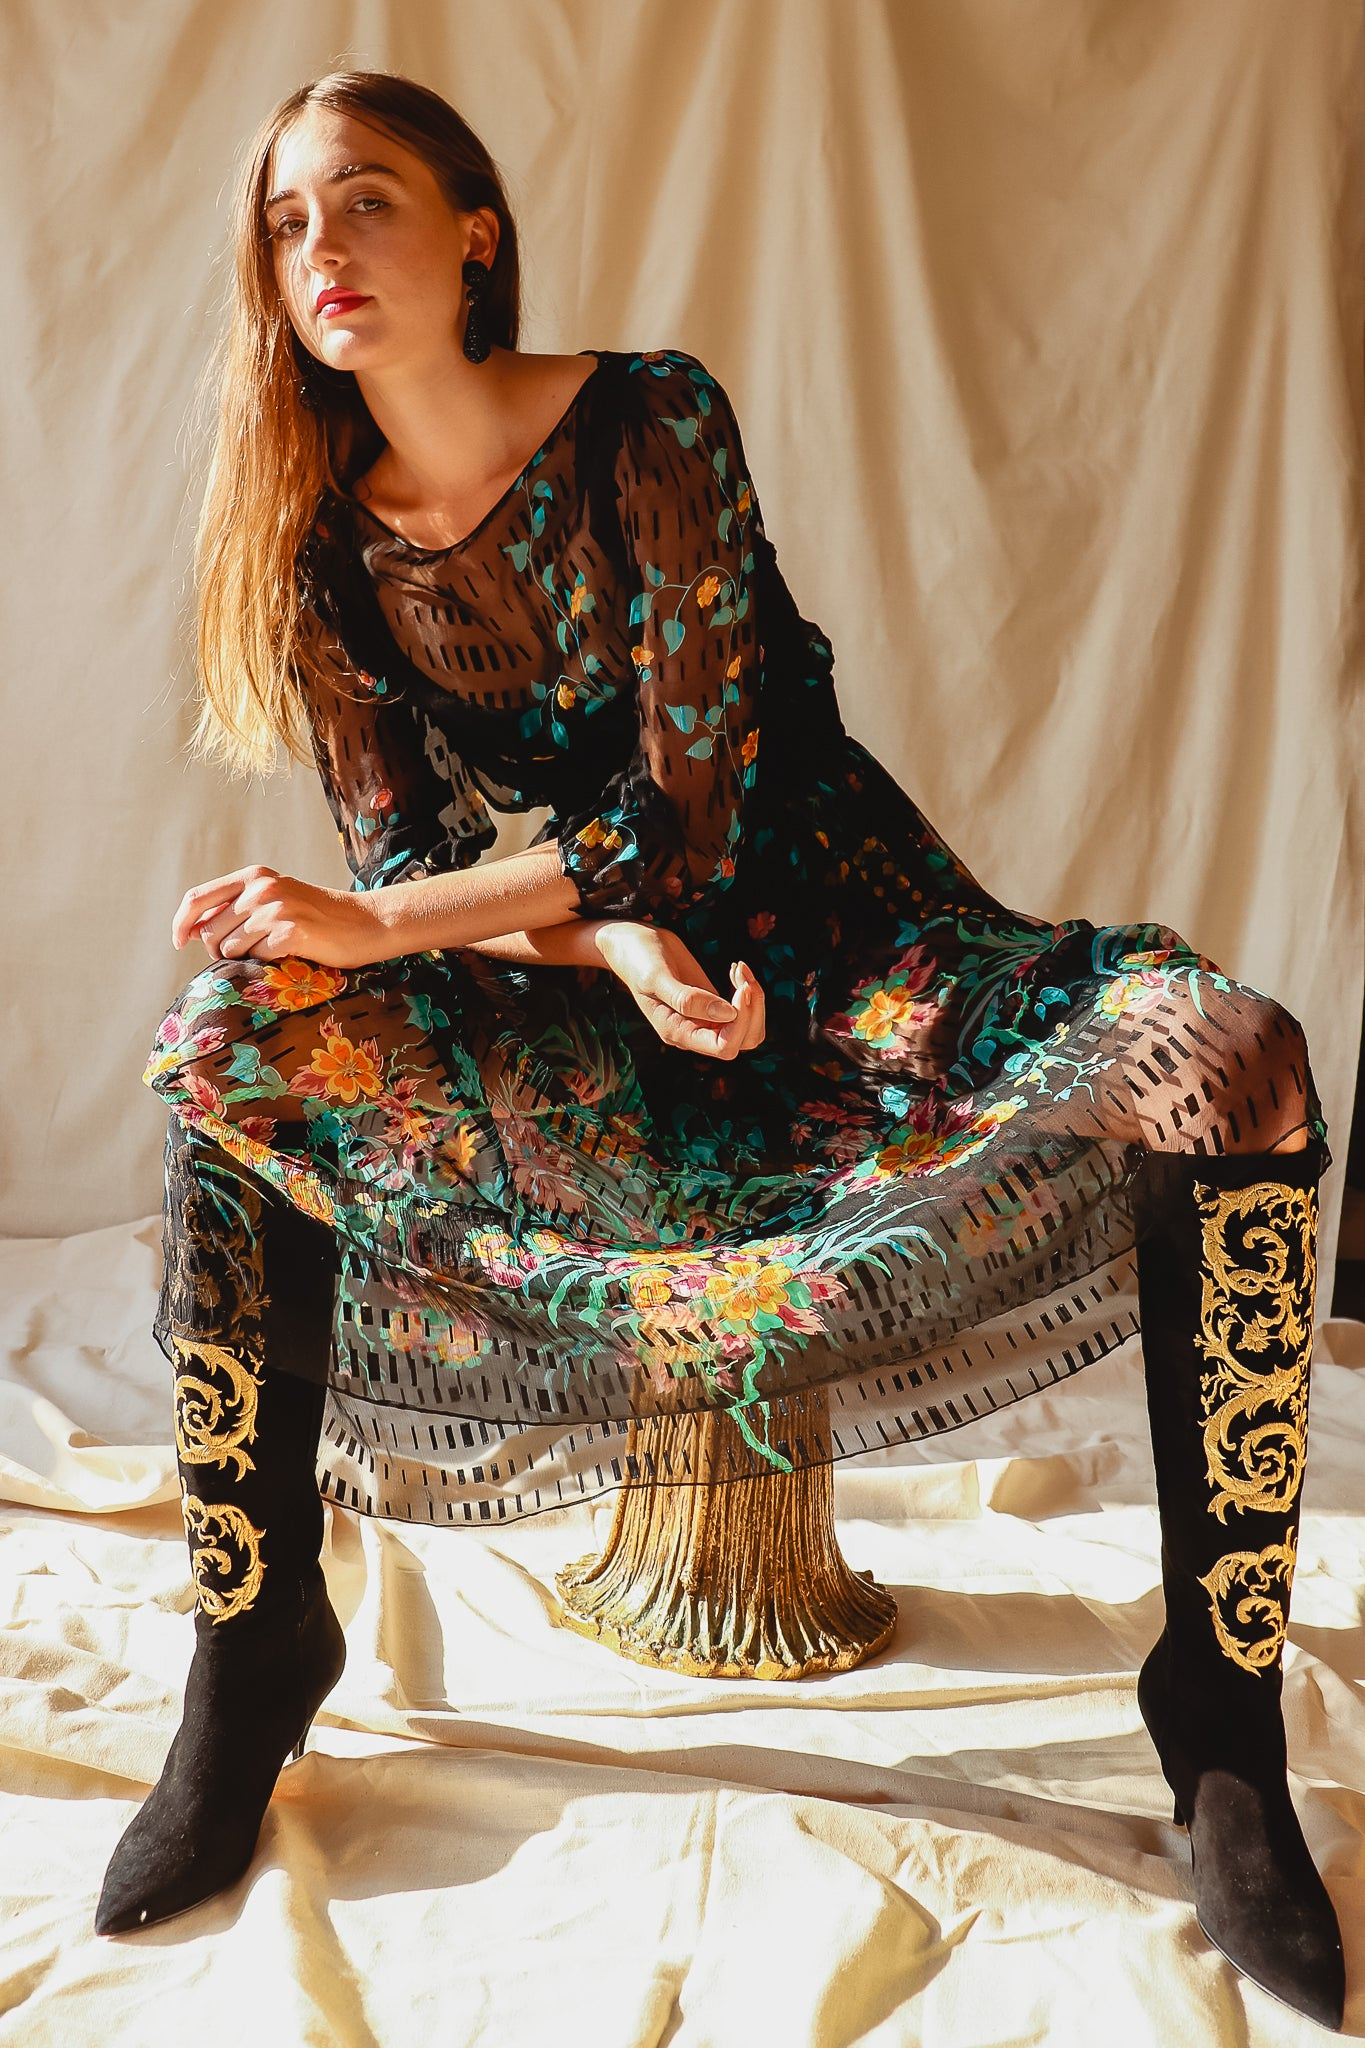 Recess Vintage Consignment LA Girl in Vintage Sheer Silk Floral Dress & Embroidered Boots on Stool